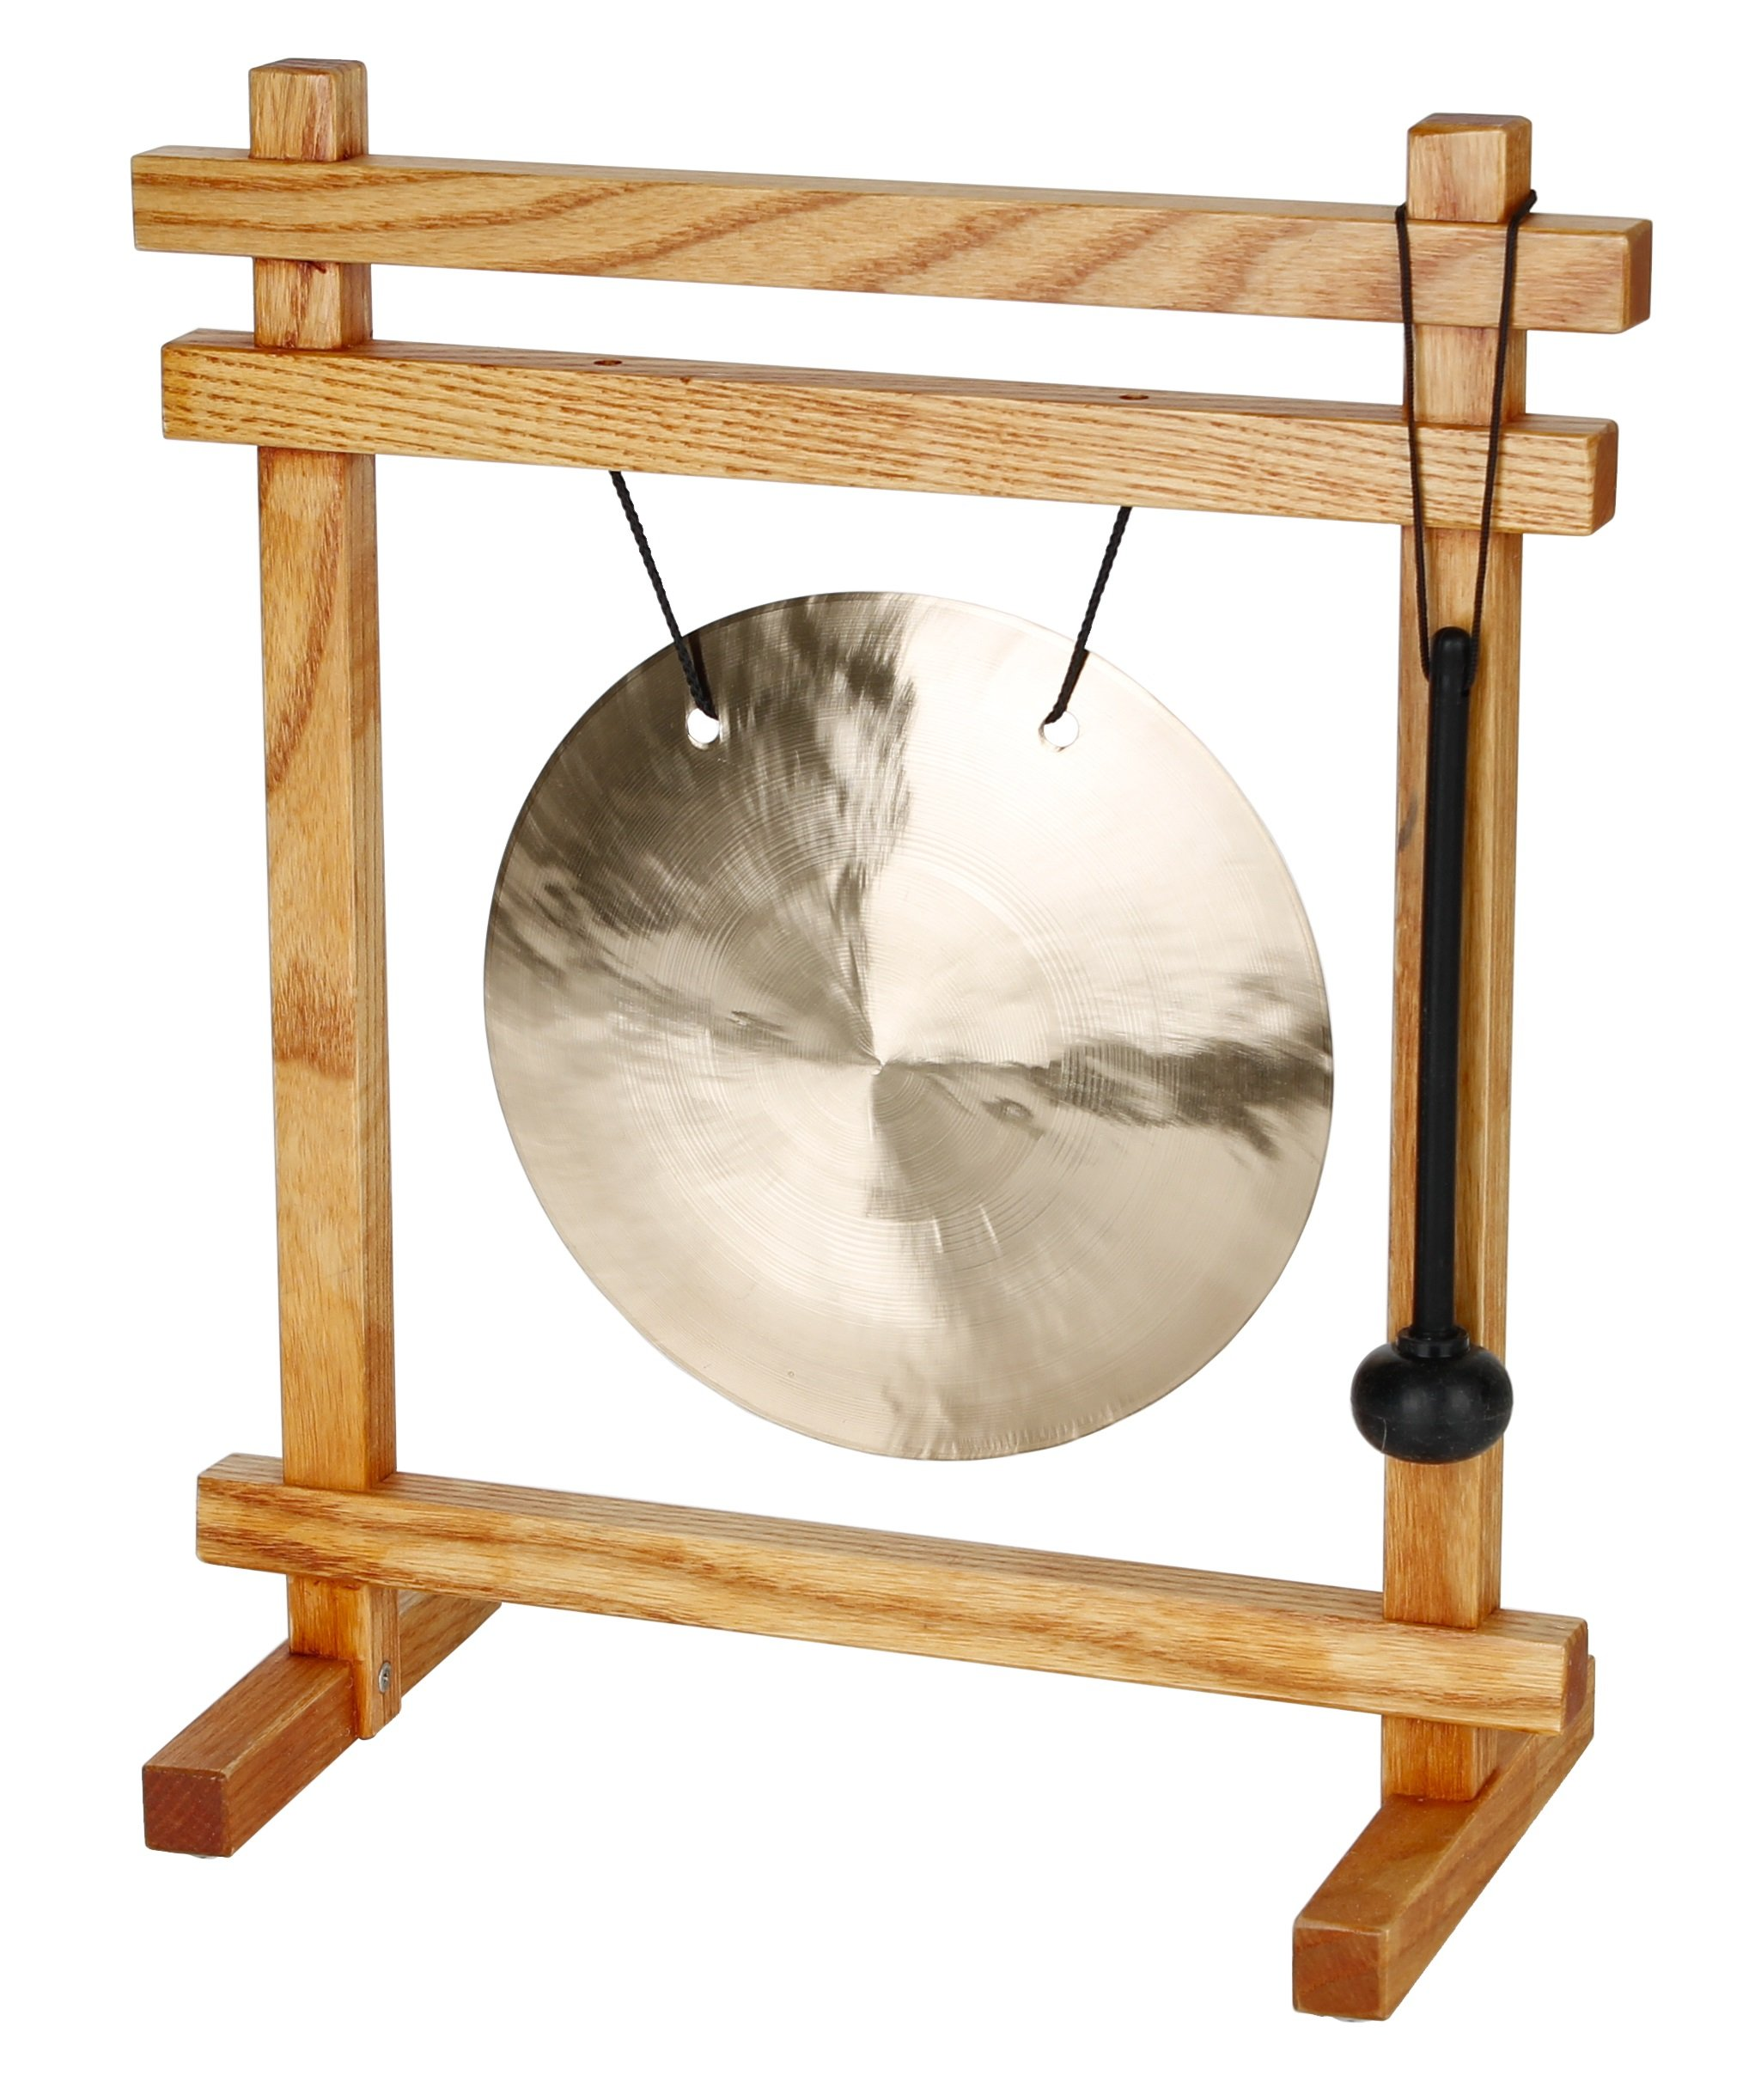 Woodstock Table Top Gong, Cherry Finish by Woodstock Chimes